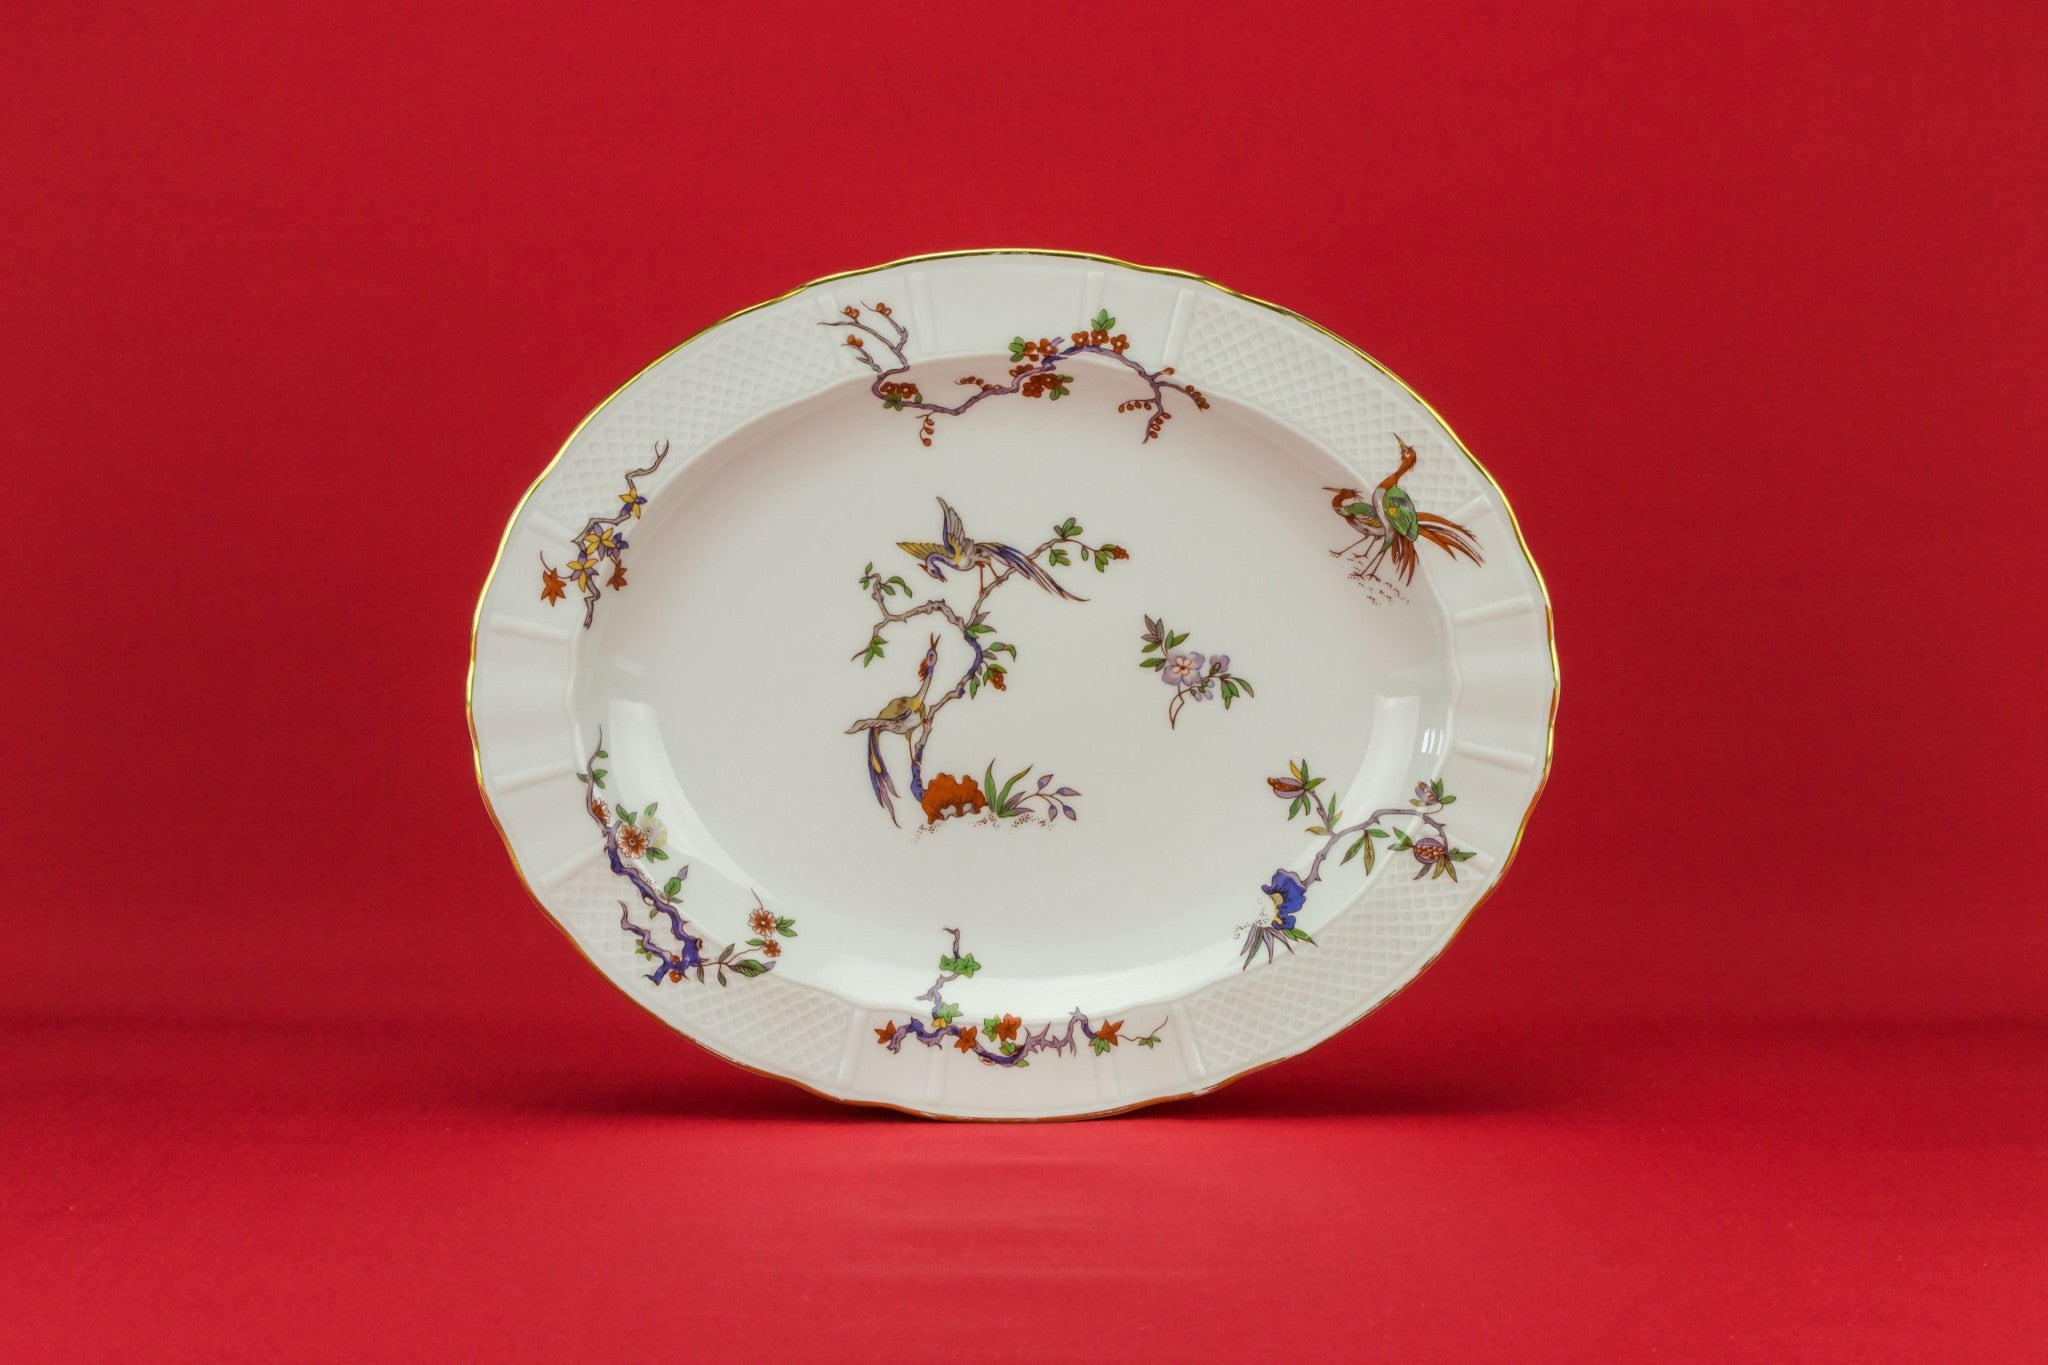 Limoges serving platter